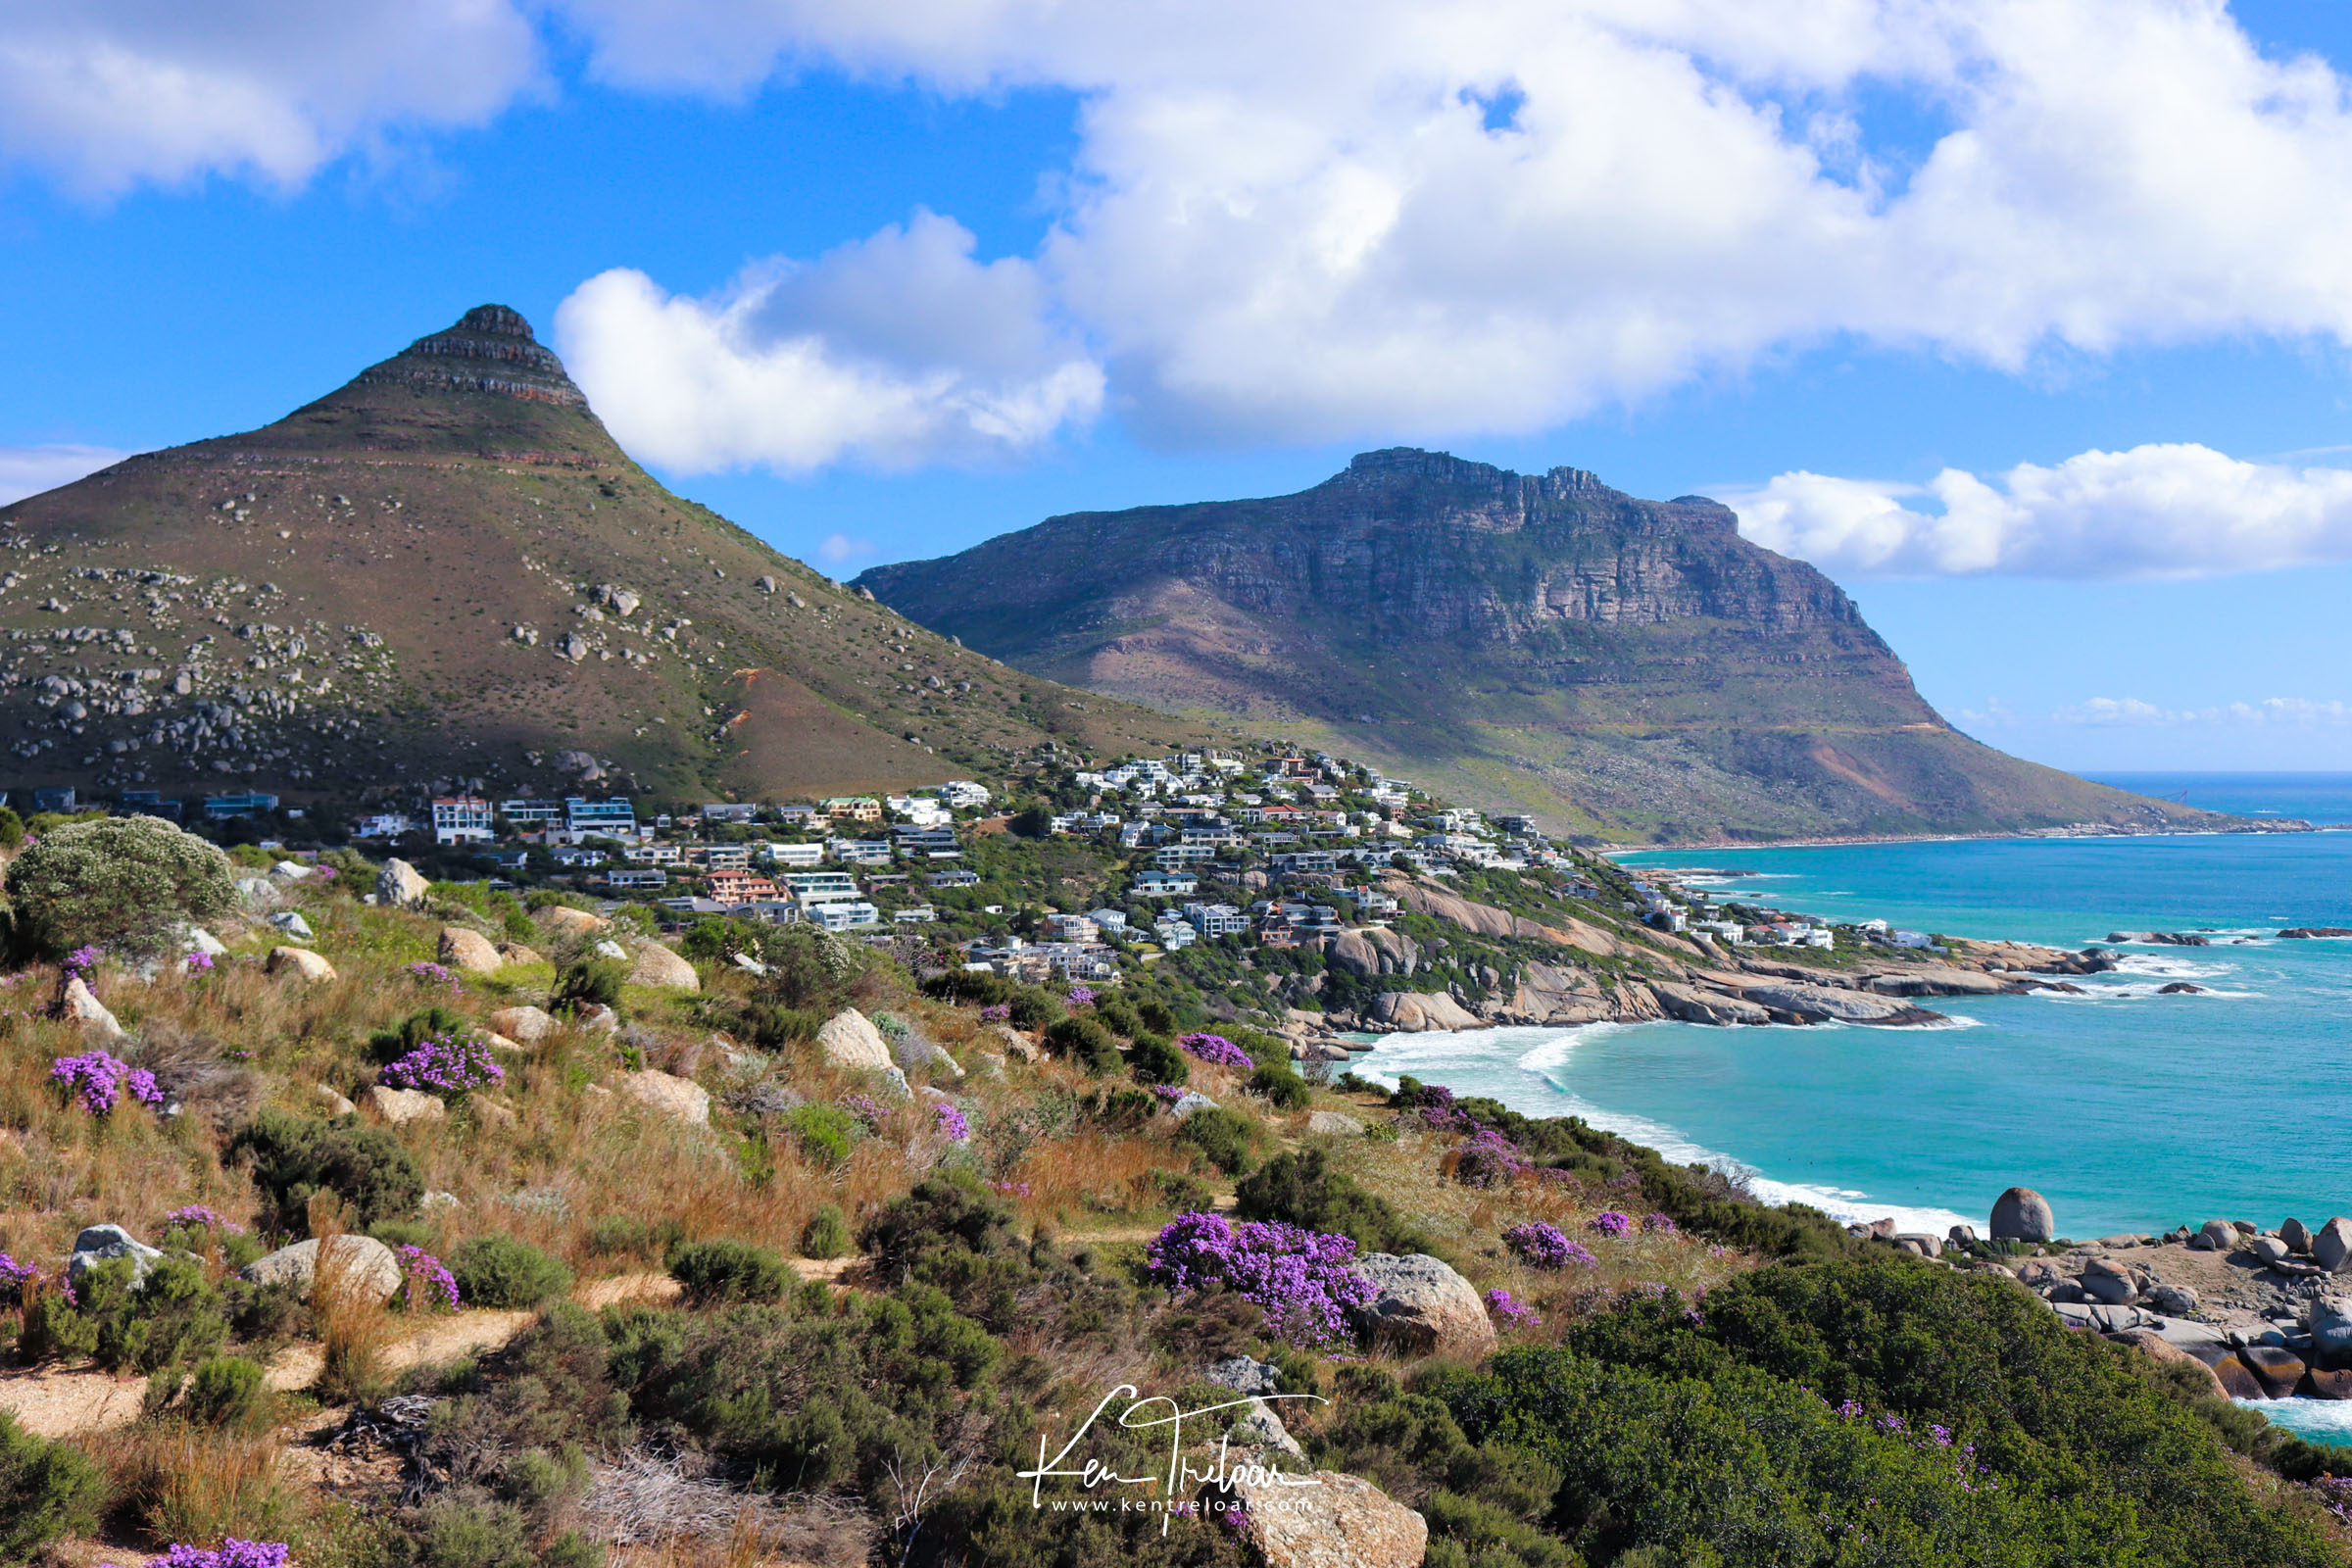 Cape Town Travel Images by Ken Treloar Photography 2019-7.jpg